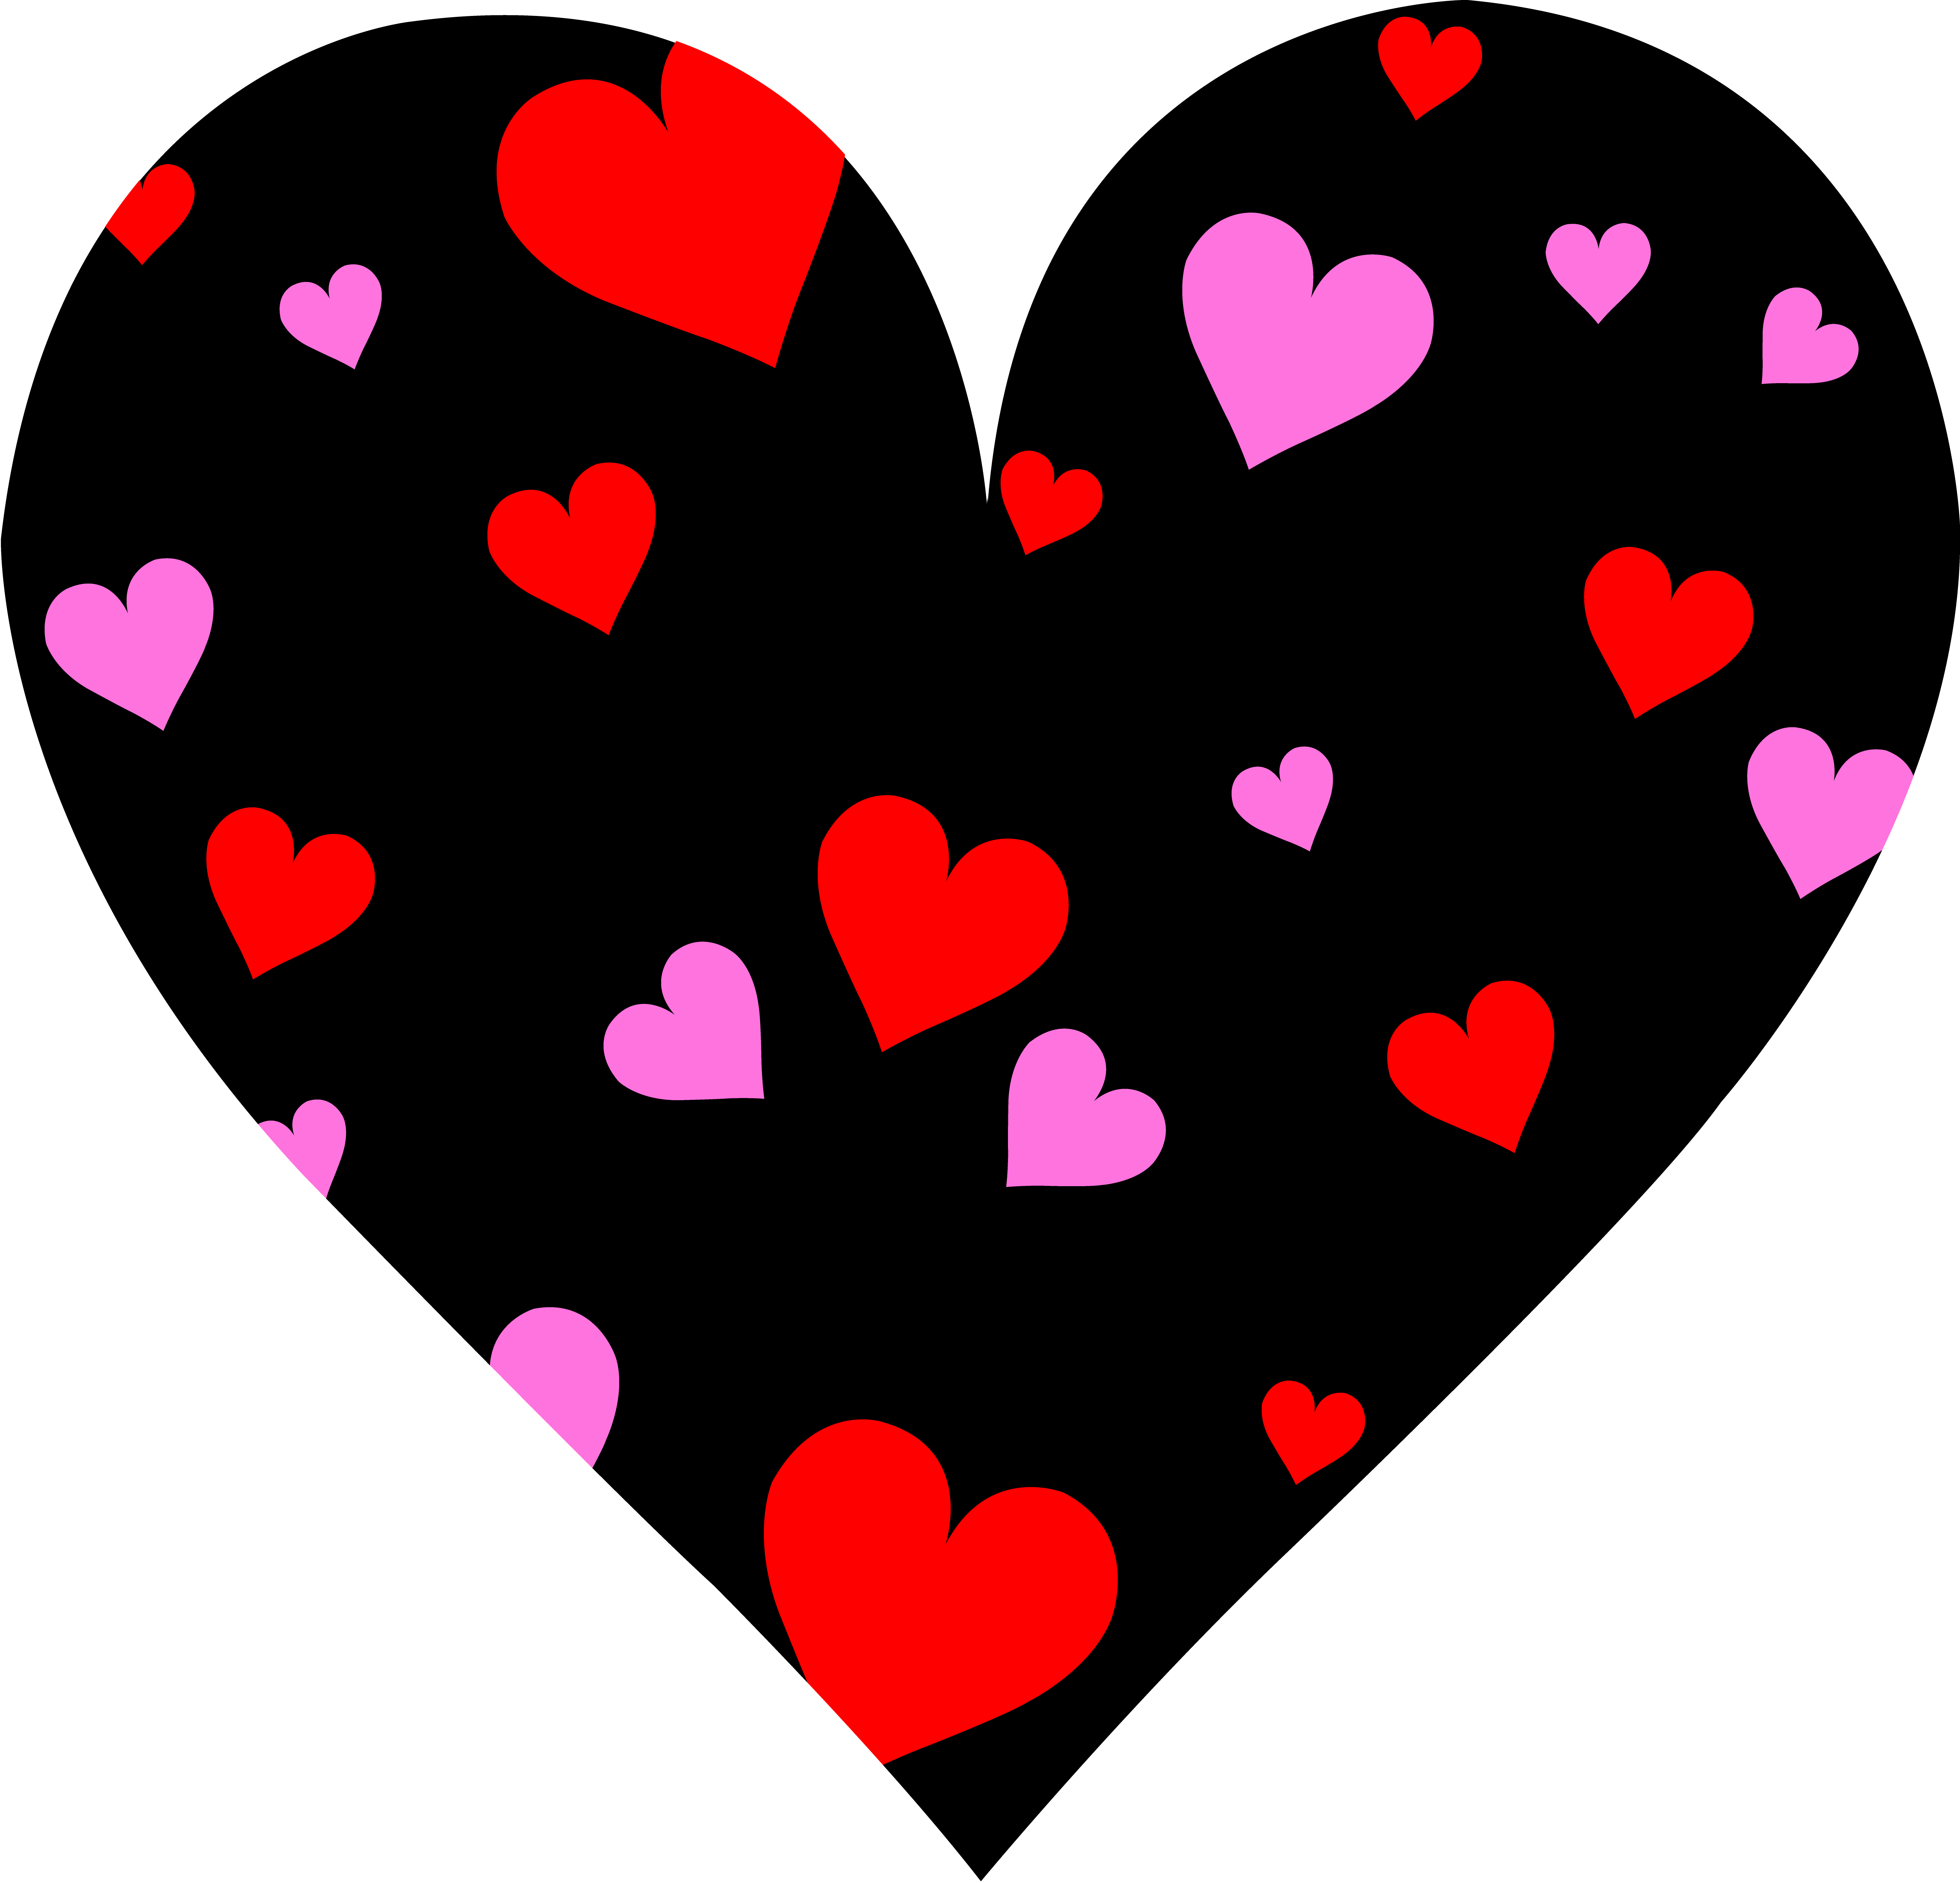 svg royalty free library Love heart panda free. Valentine clipart note